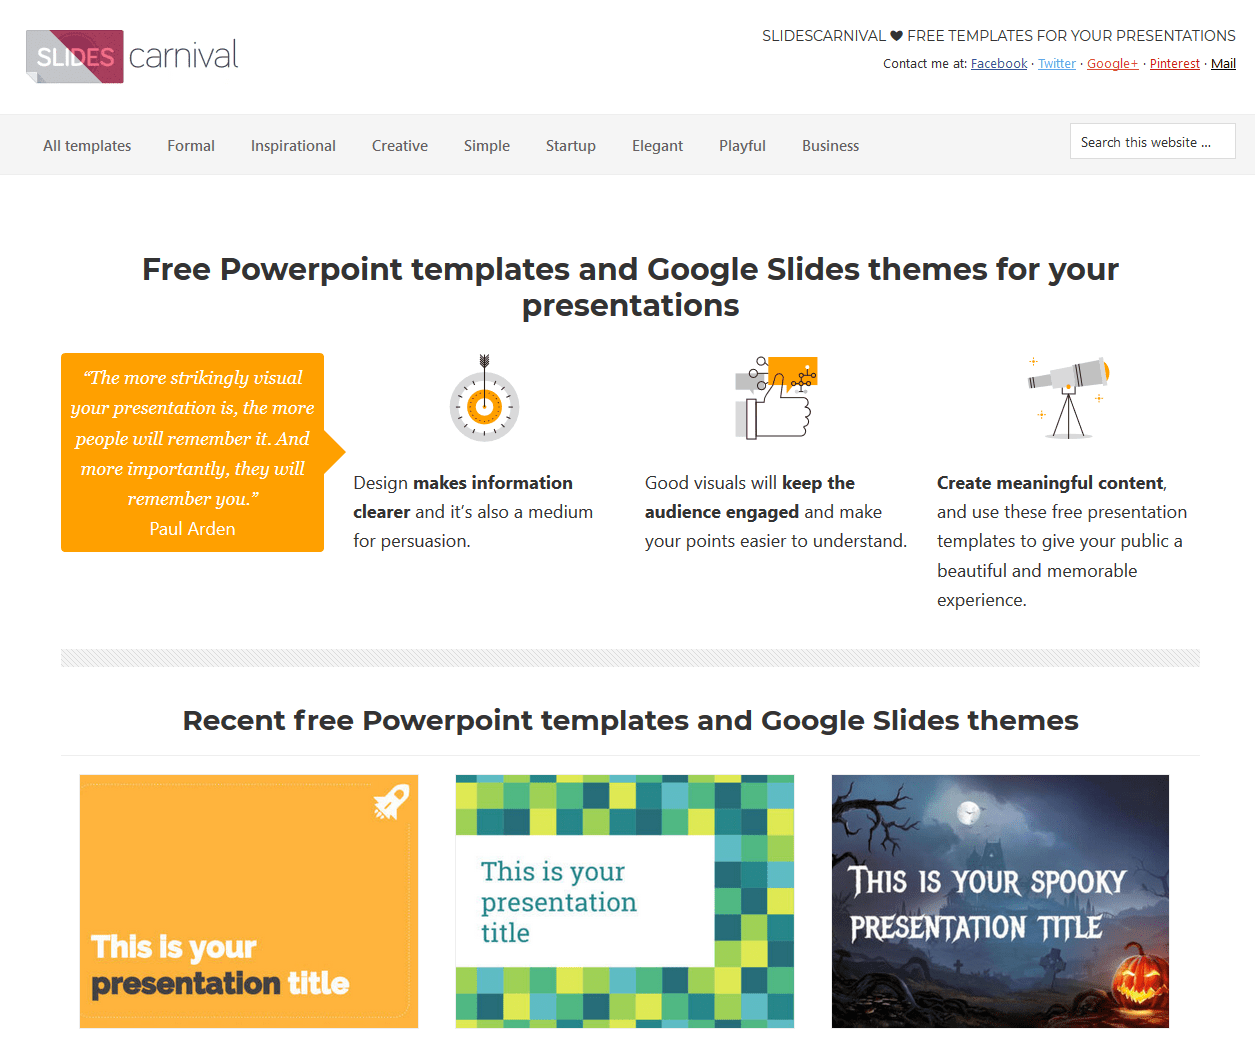 Slidescarnival free powerpoint templates and google slides themes slidescarnival free powerpoint templates and google slides themes for presenta eduk8me toneelgroepblik